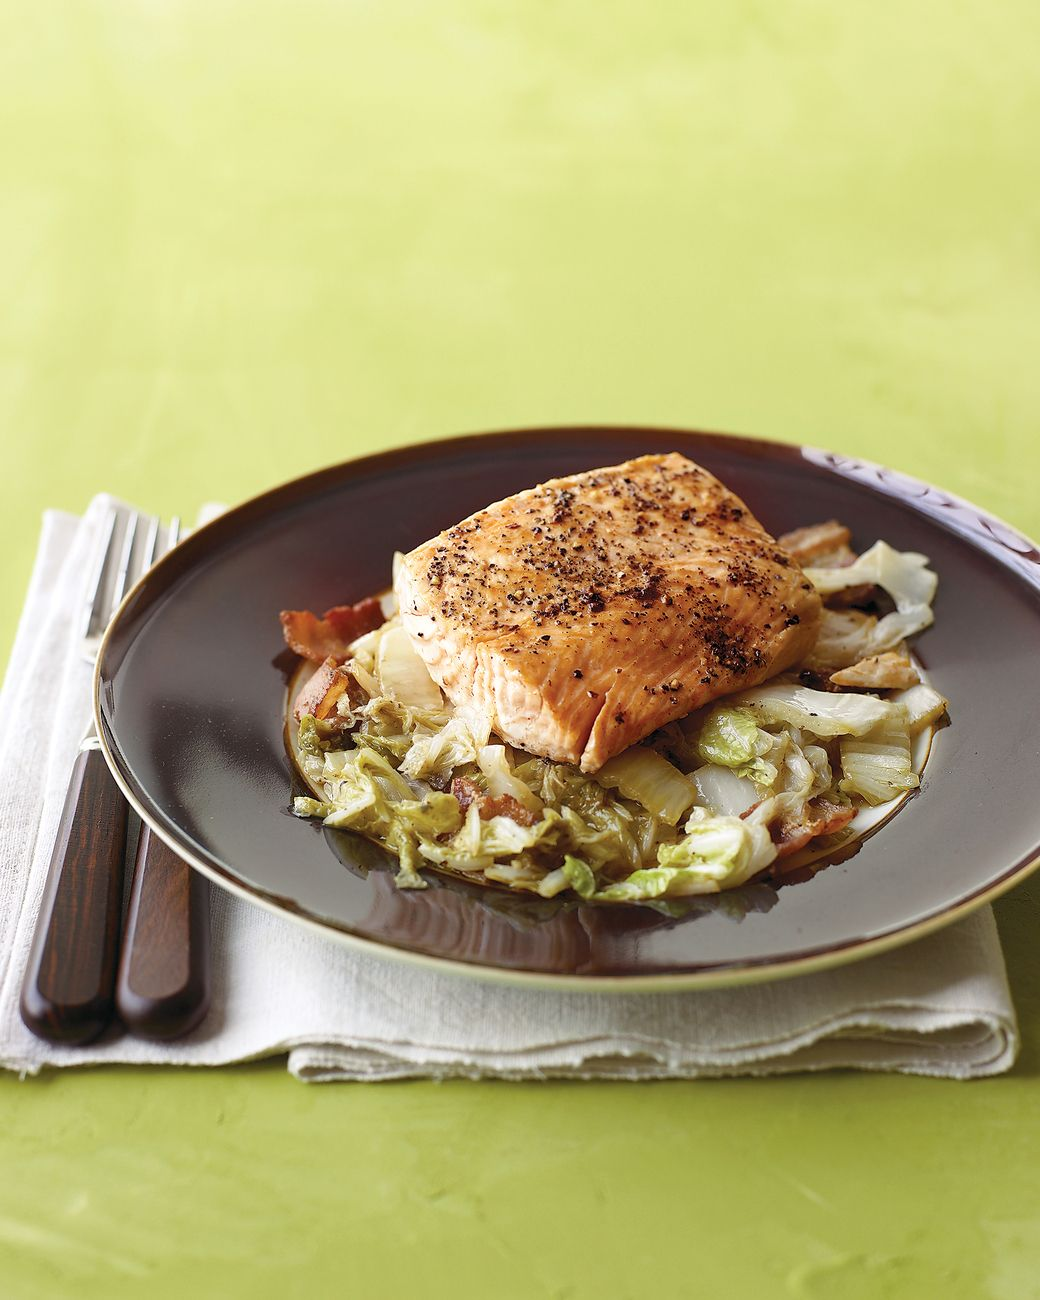 Also known as Chinese cabbage, napa cabbage is delicious on top of this salmon that is cooked in a skillet.